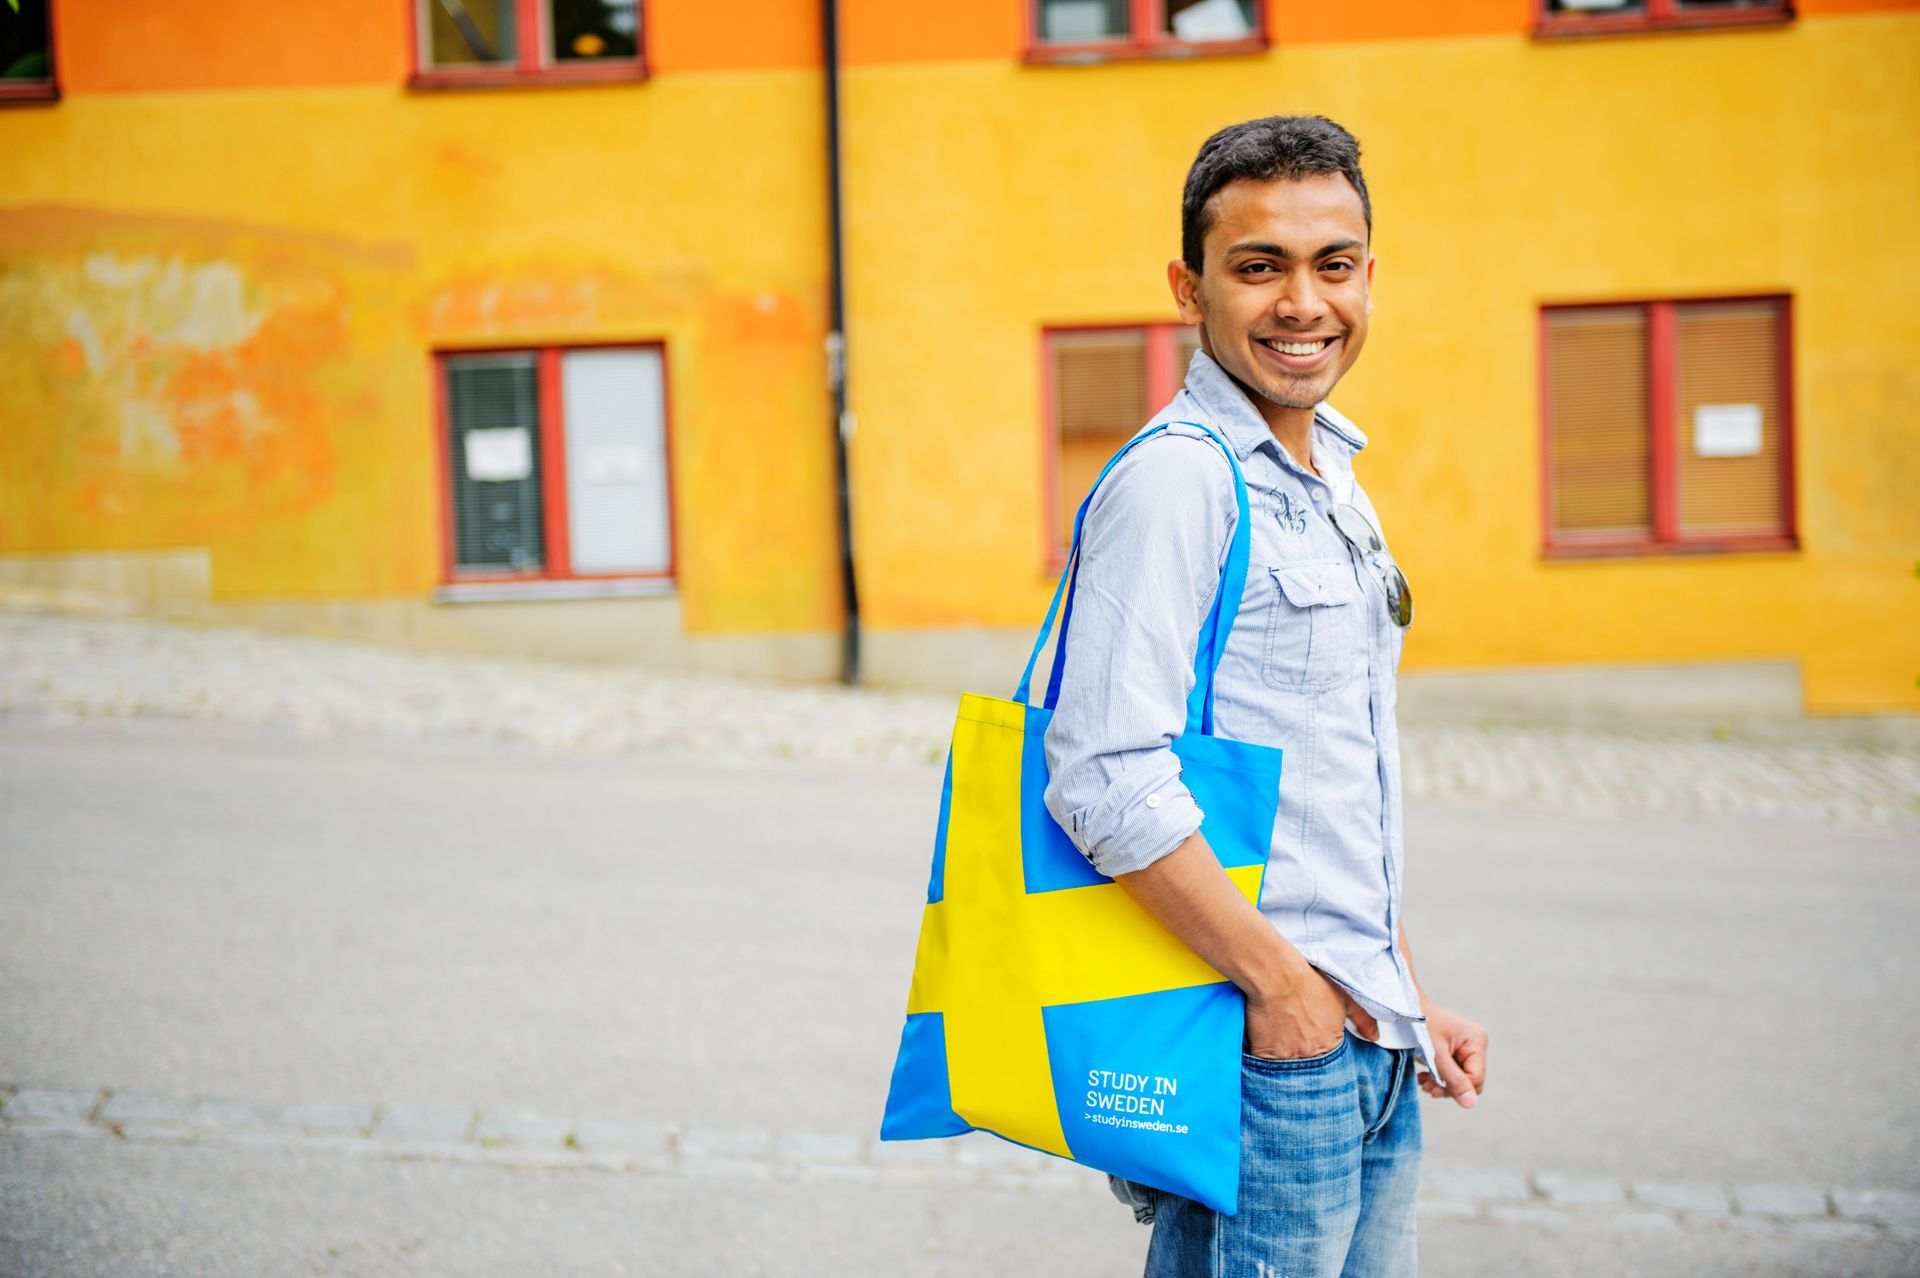 Student poses with Study in Sweden tote bag